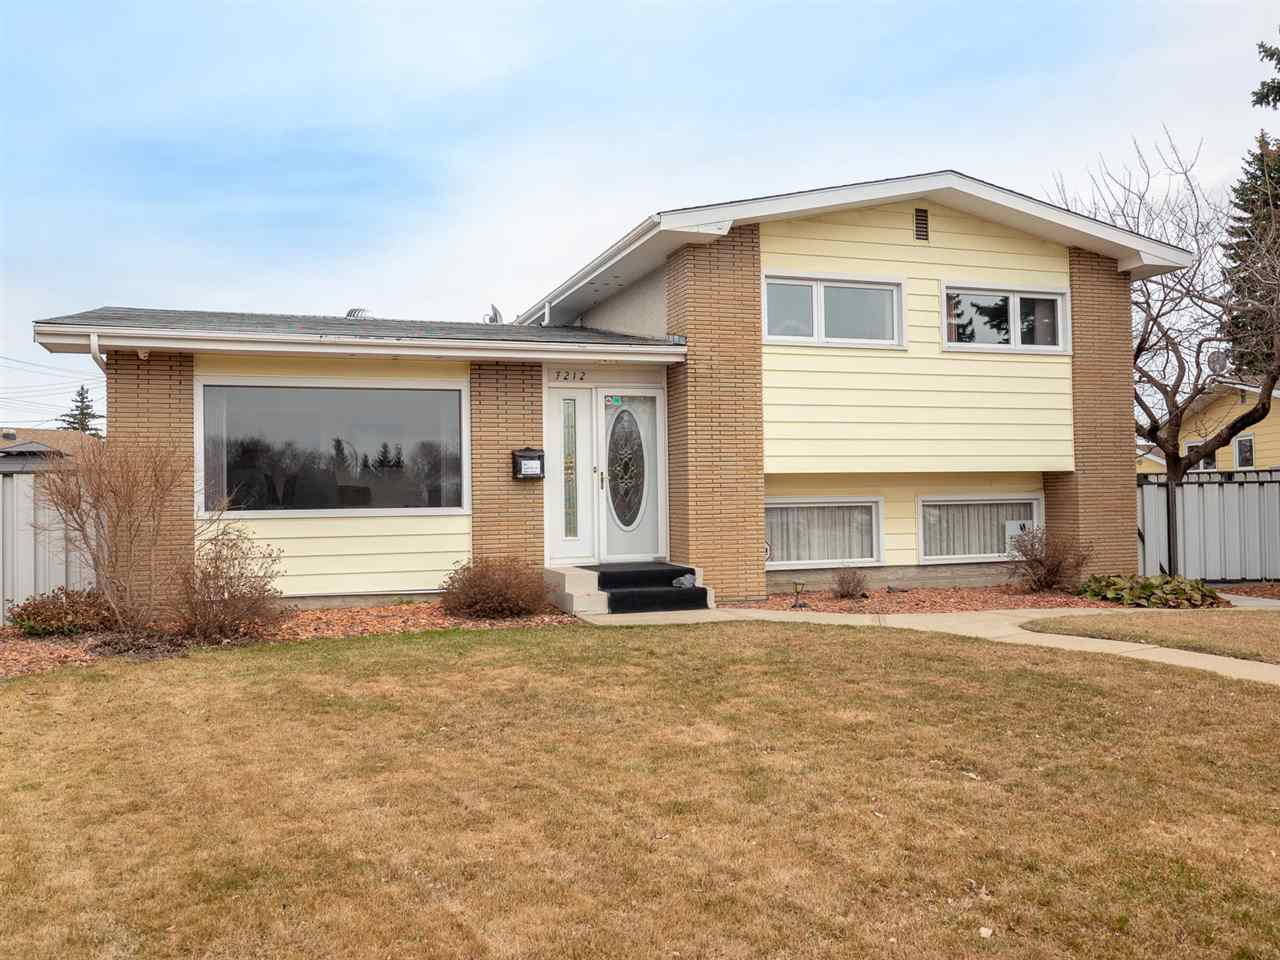 MLS® listing #E4153112 for sale located at 7212 84 Avenue